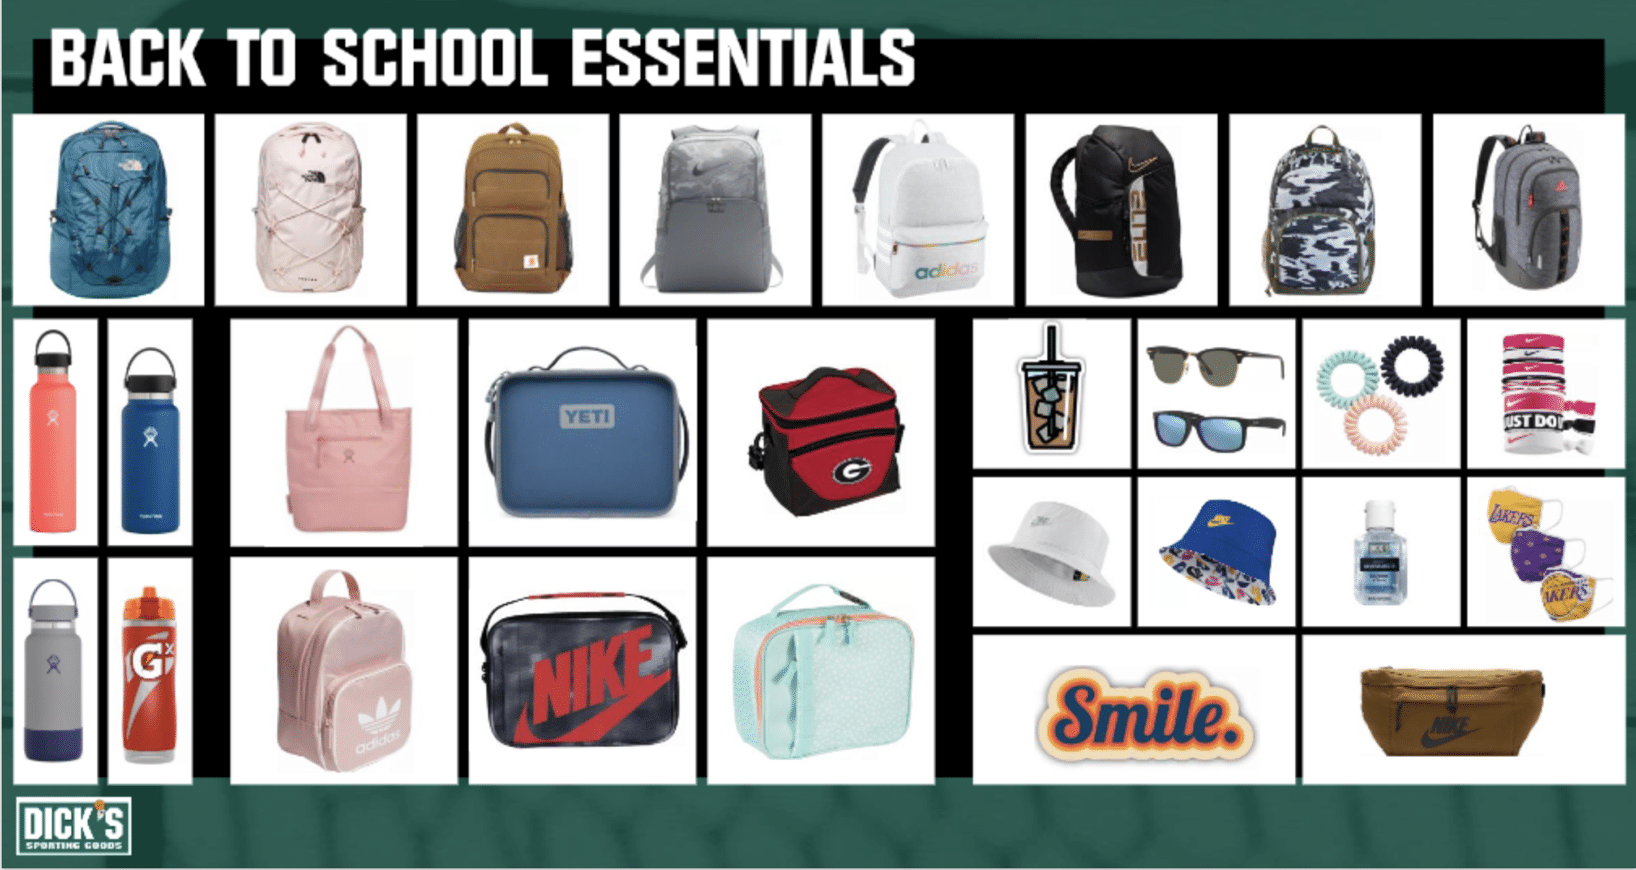 dick's back to school essentials